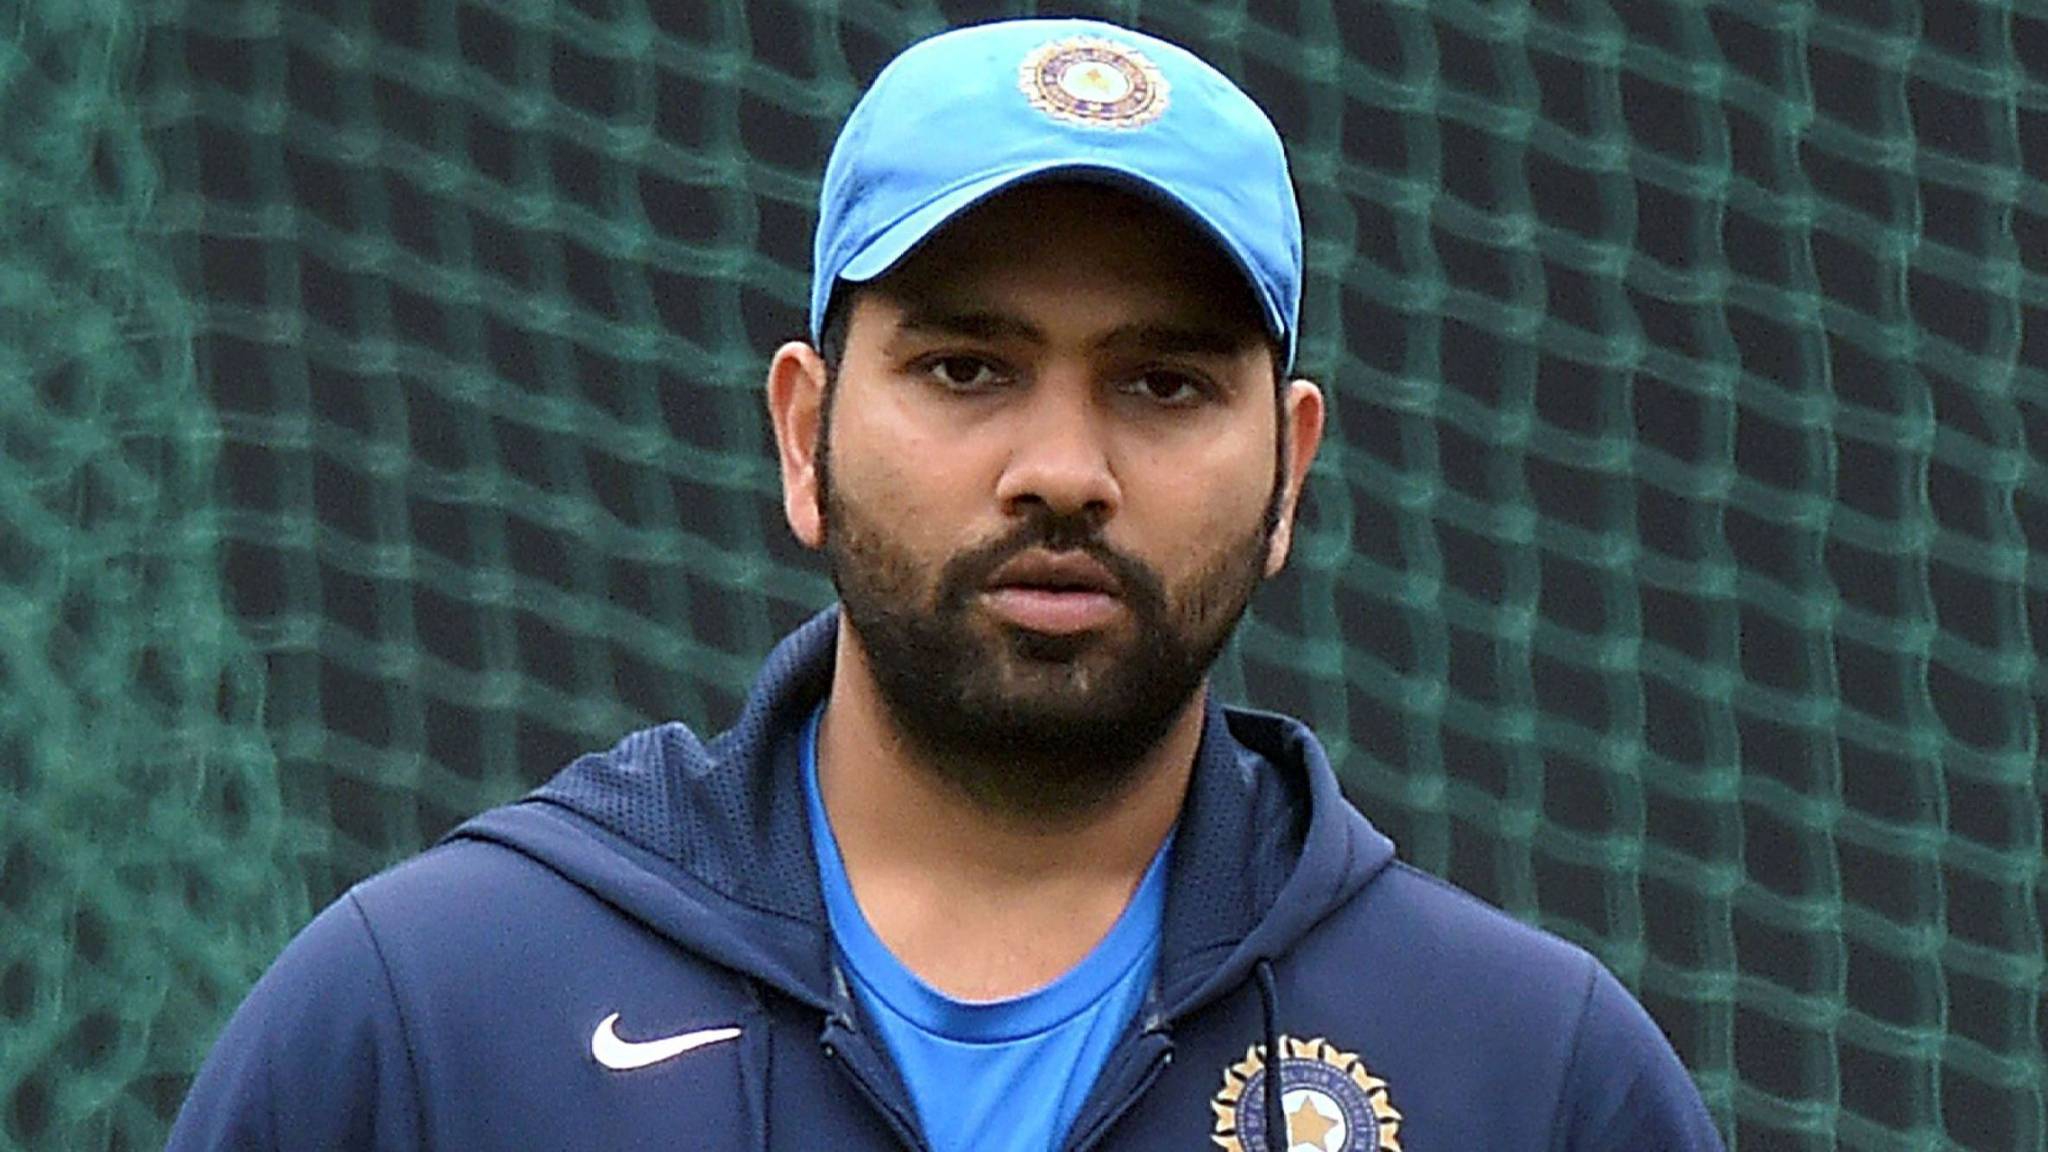 Rohit Sharma All Set to Surpass This MS Dhoni Record at Delhi T20I